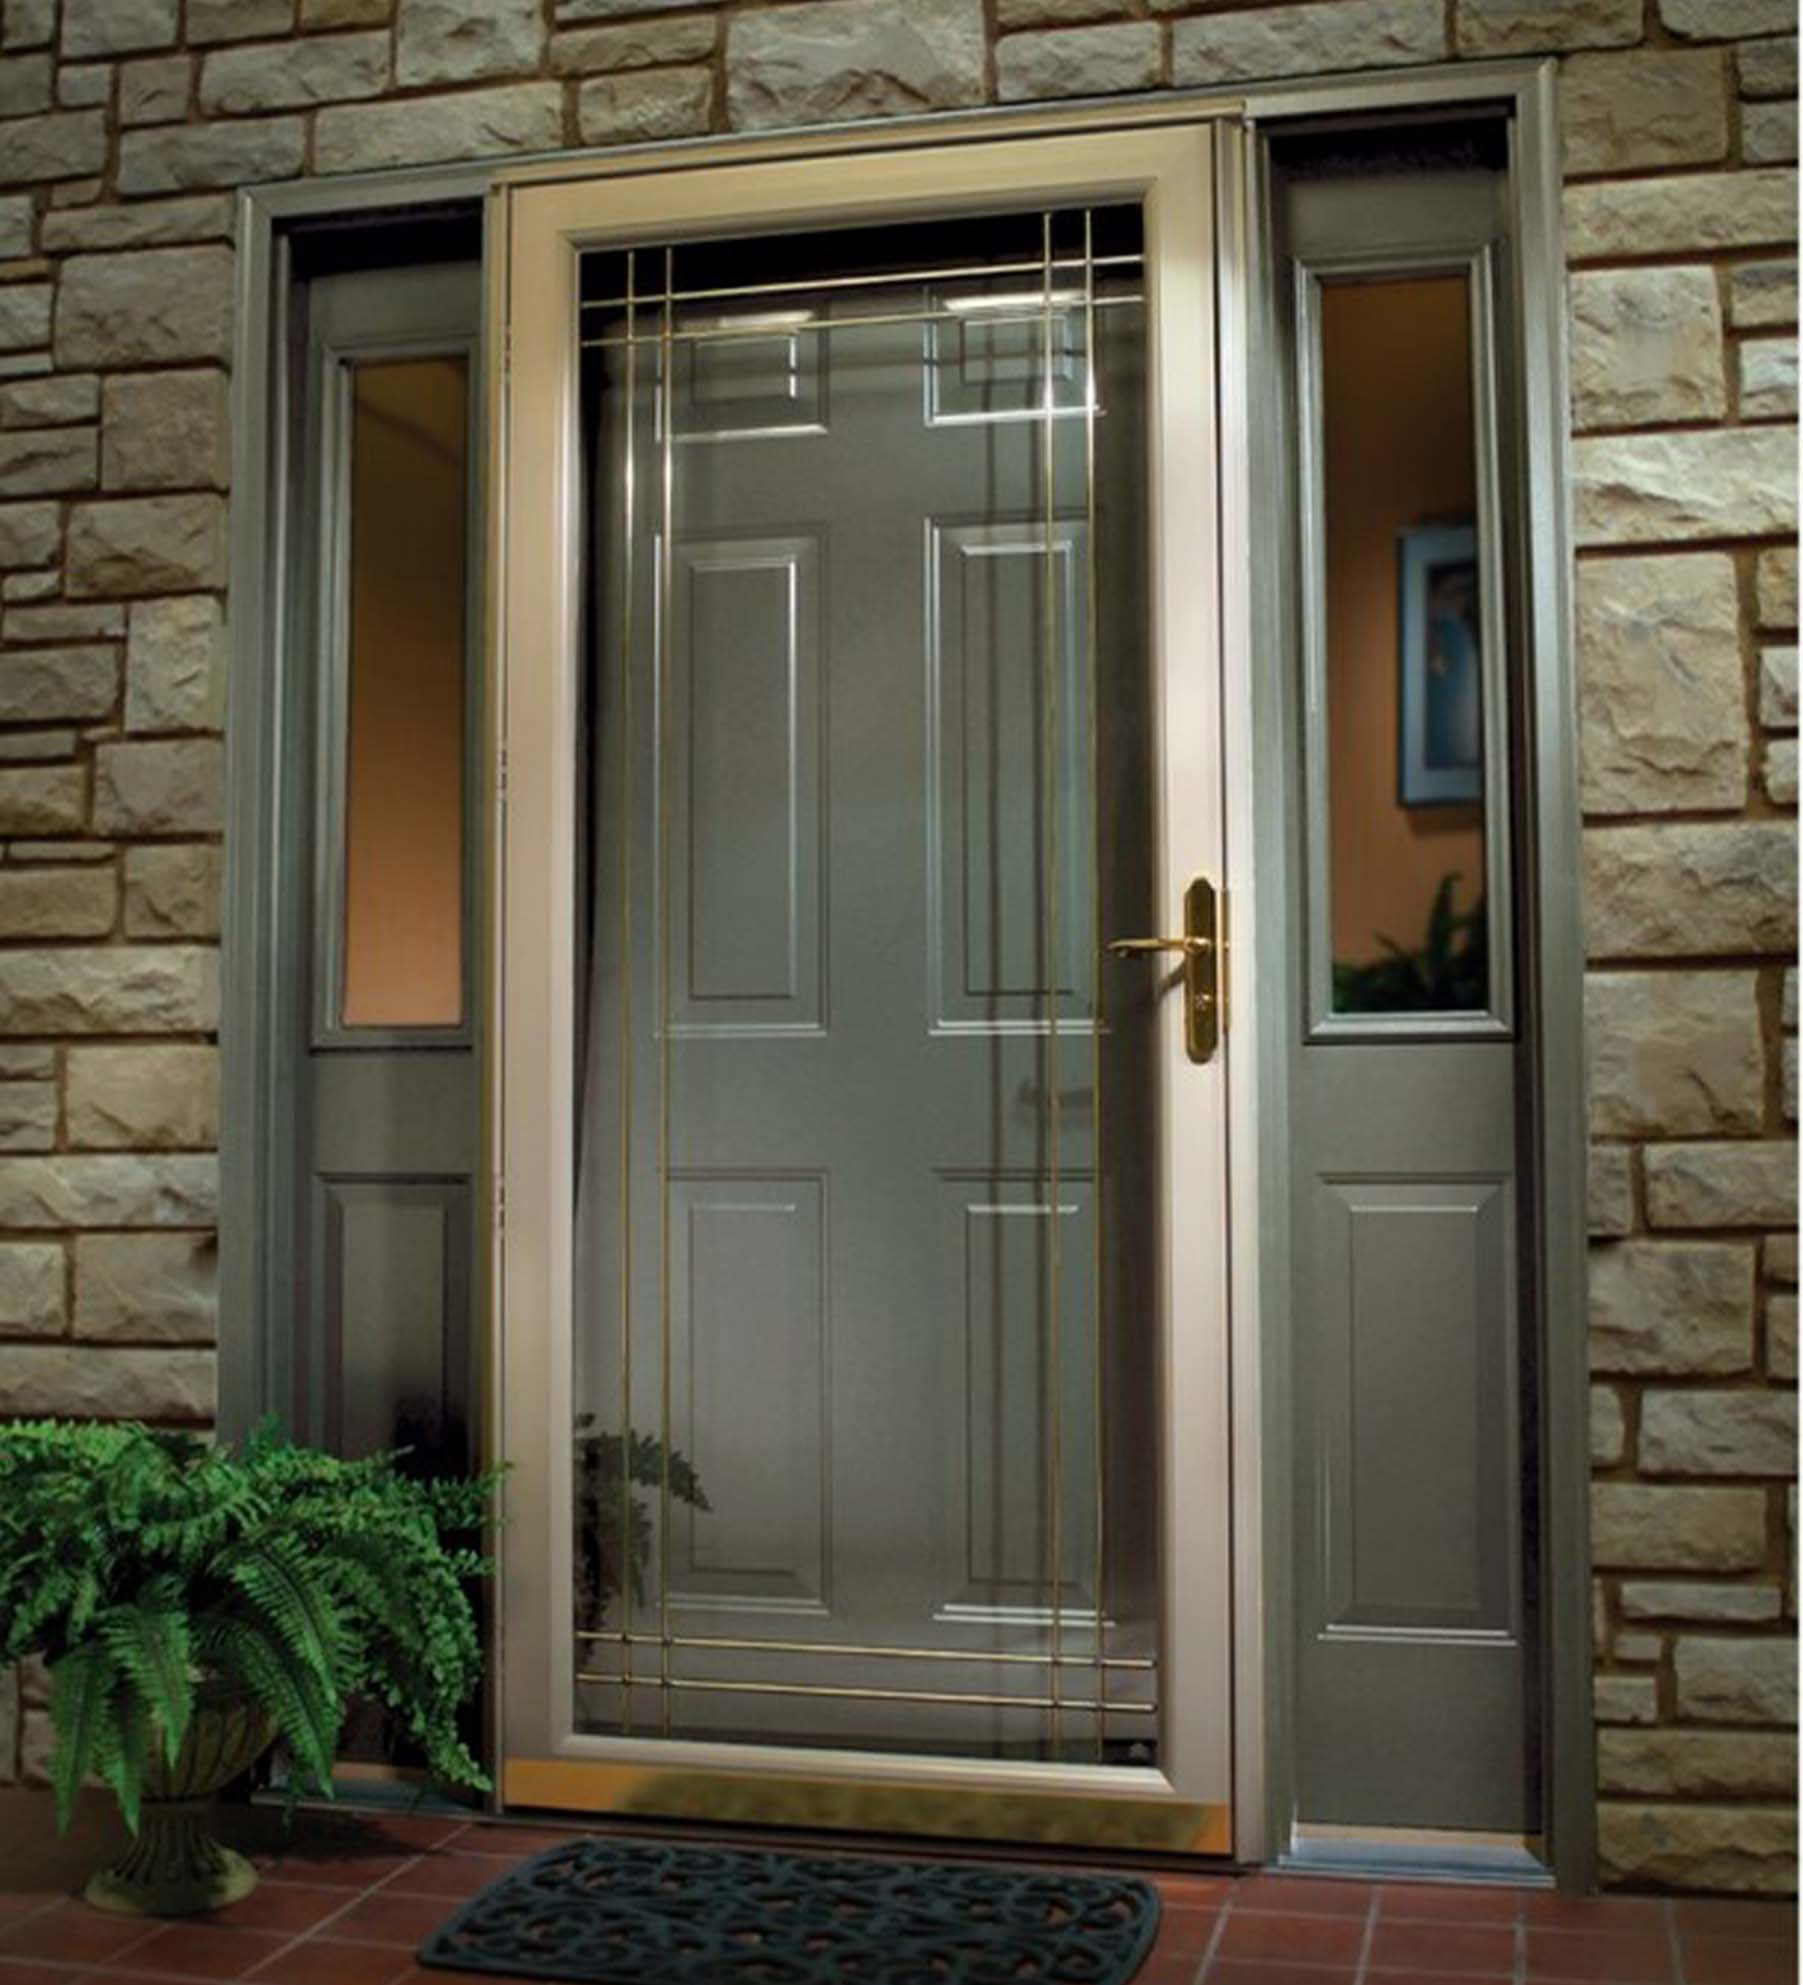 INSTALLED Larson Full View Glass Design Storm Door w/ Hardware STARTING      $440